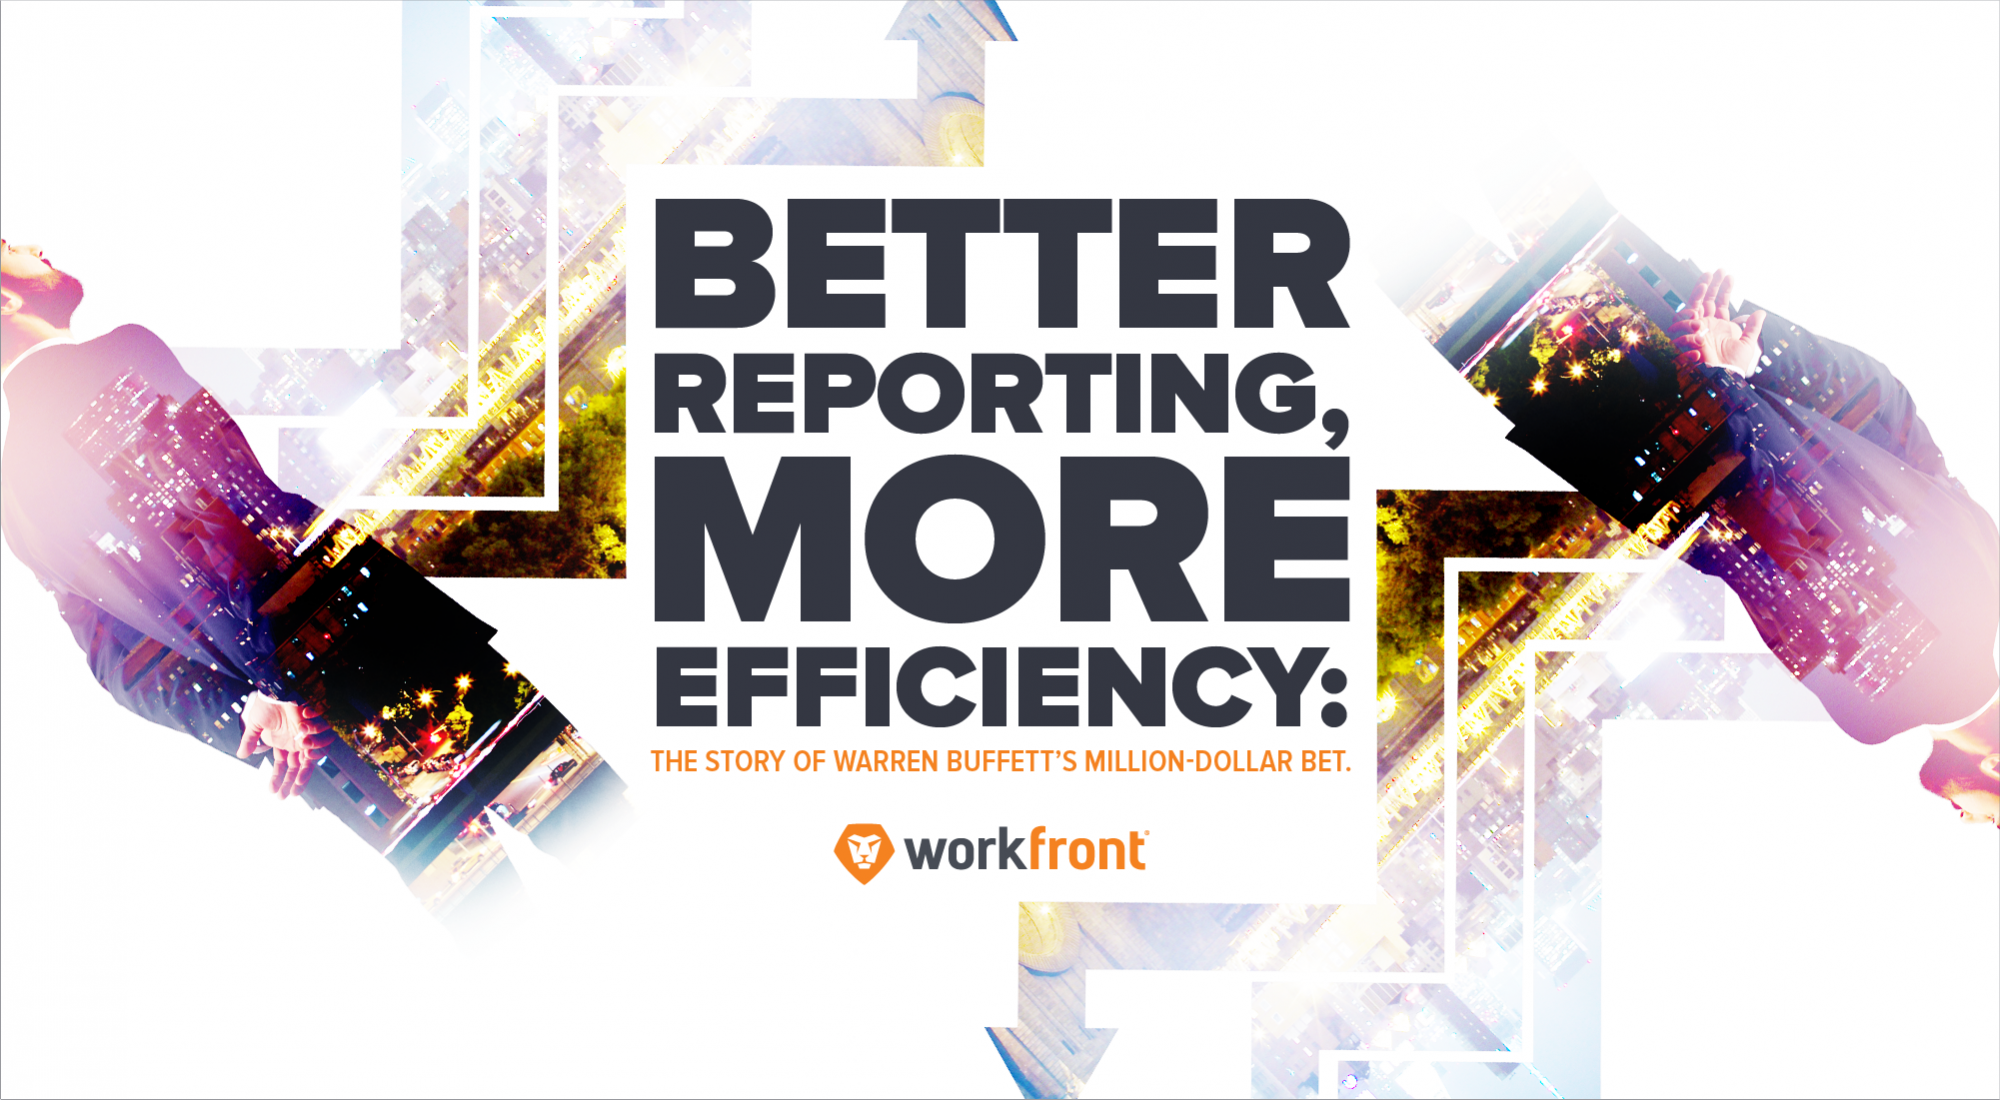 better reporting, more efficiency